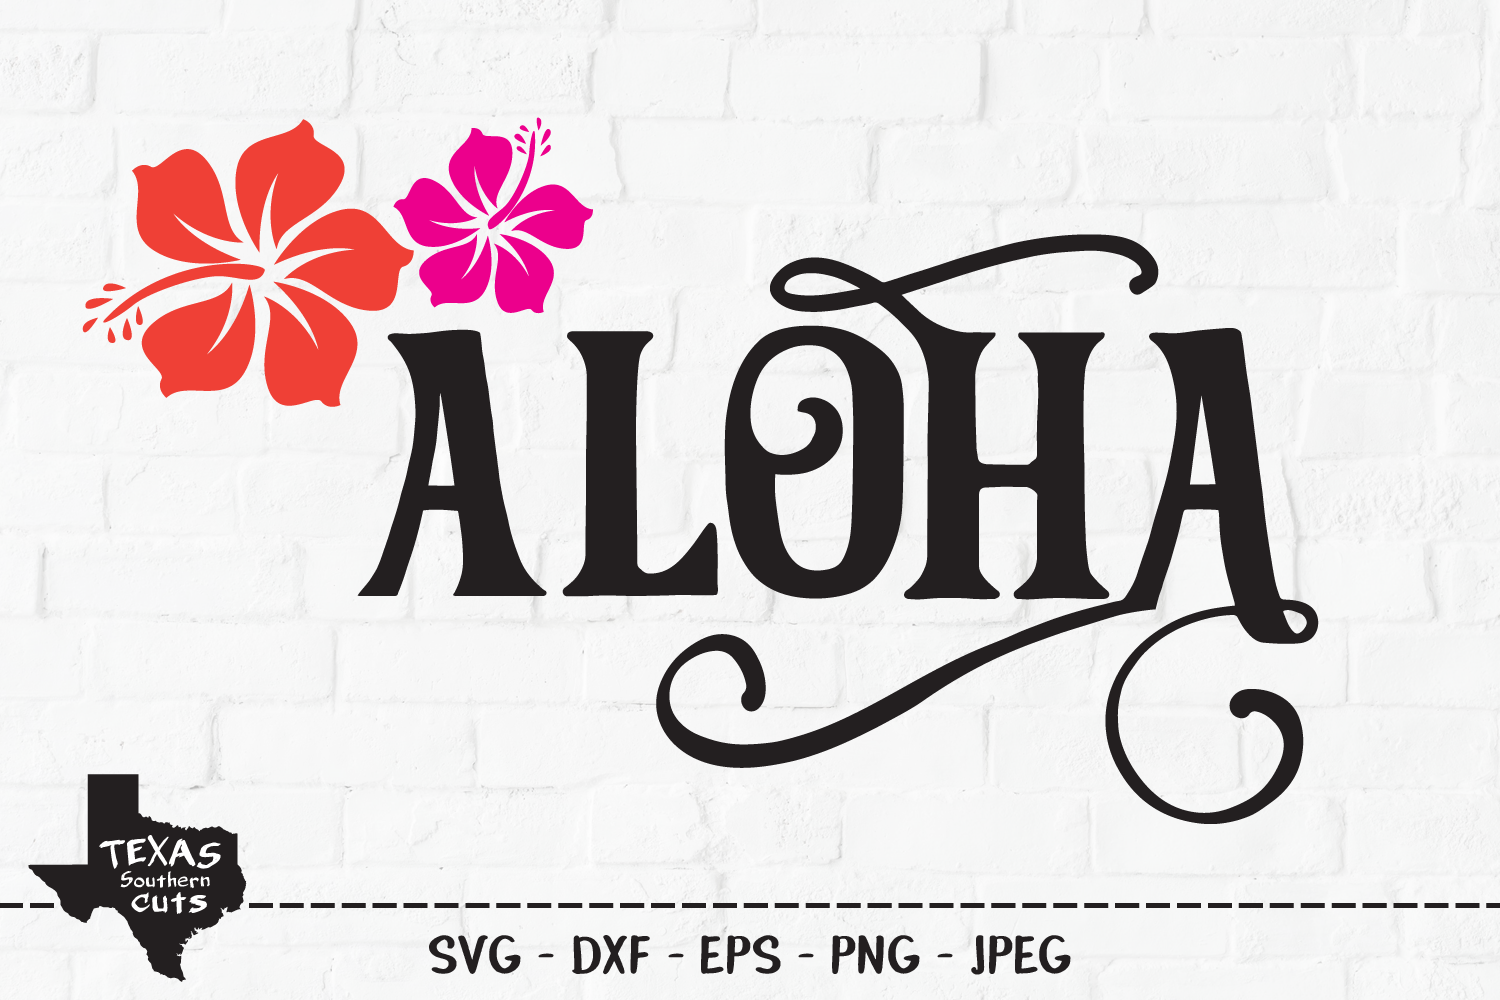 Download Free Aloha Summer Shirt Design Graphic By Texassoutherncuts for Cricut Explore, Silhouette and other cutting machines.